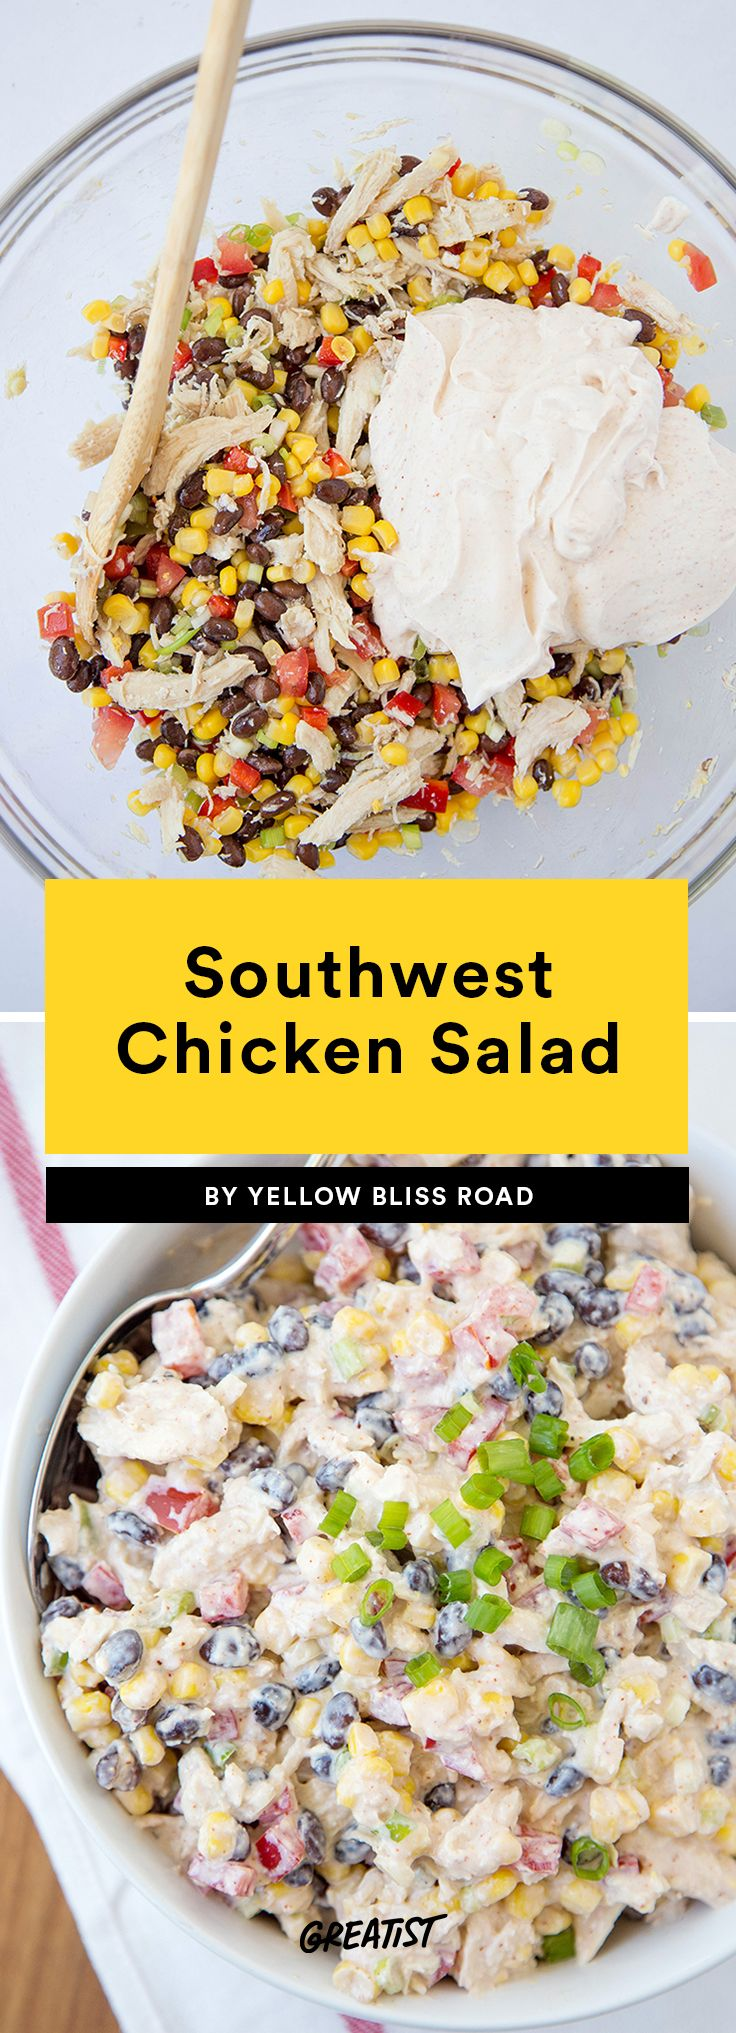 4. Southwest Chicken Salad #greatist https://greatist.com/eat/healthy-chicken-salad-recipes